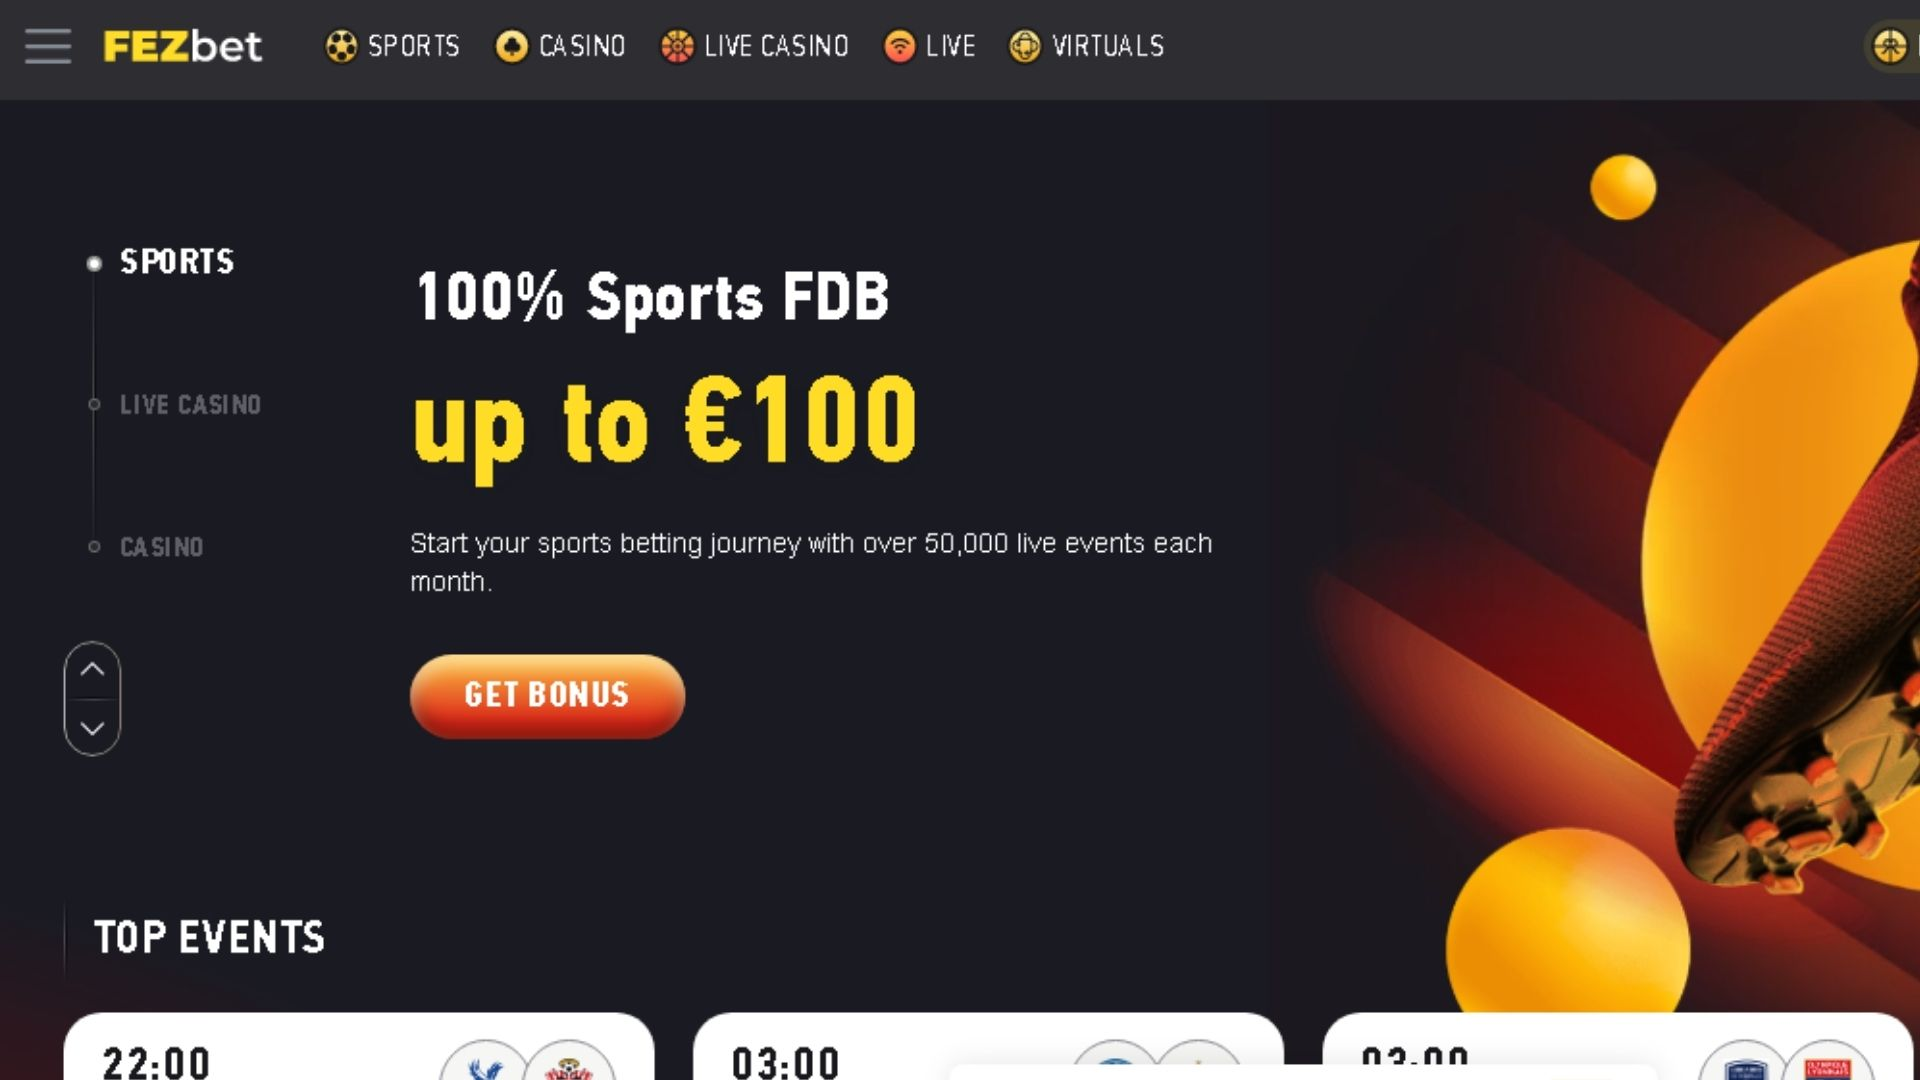 newest online casinos Fezbet